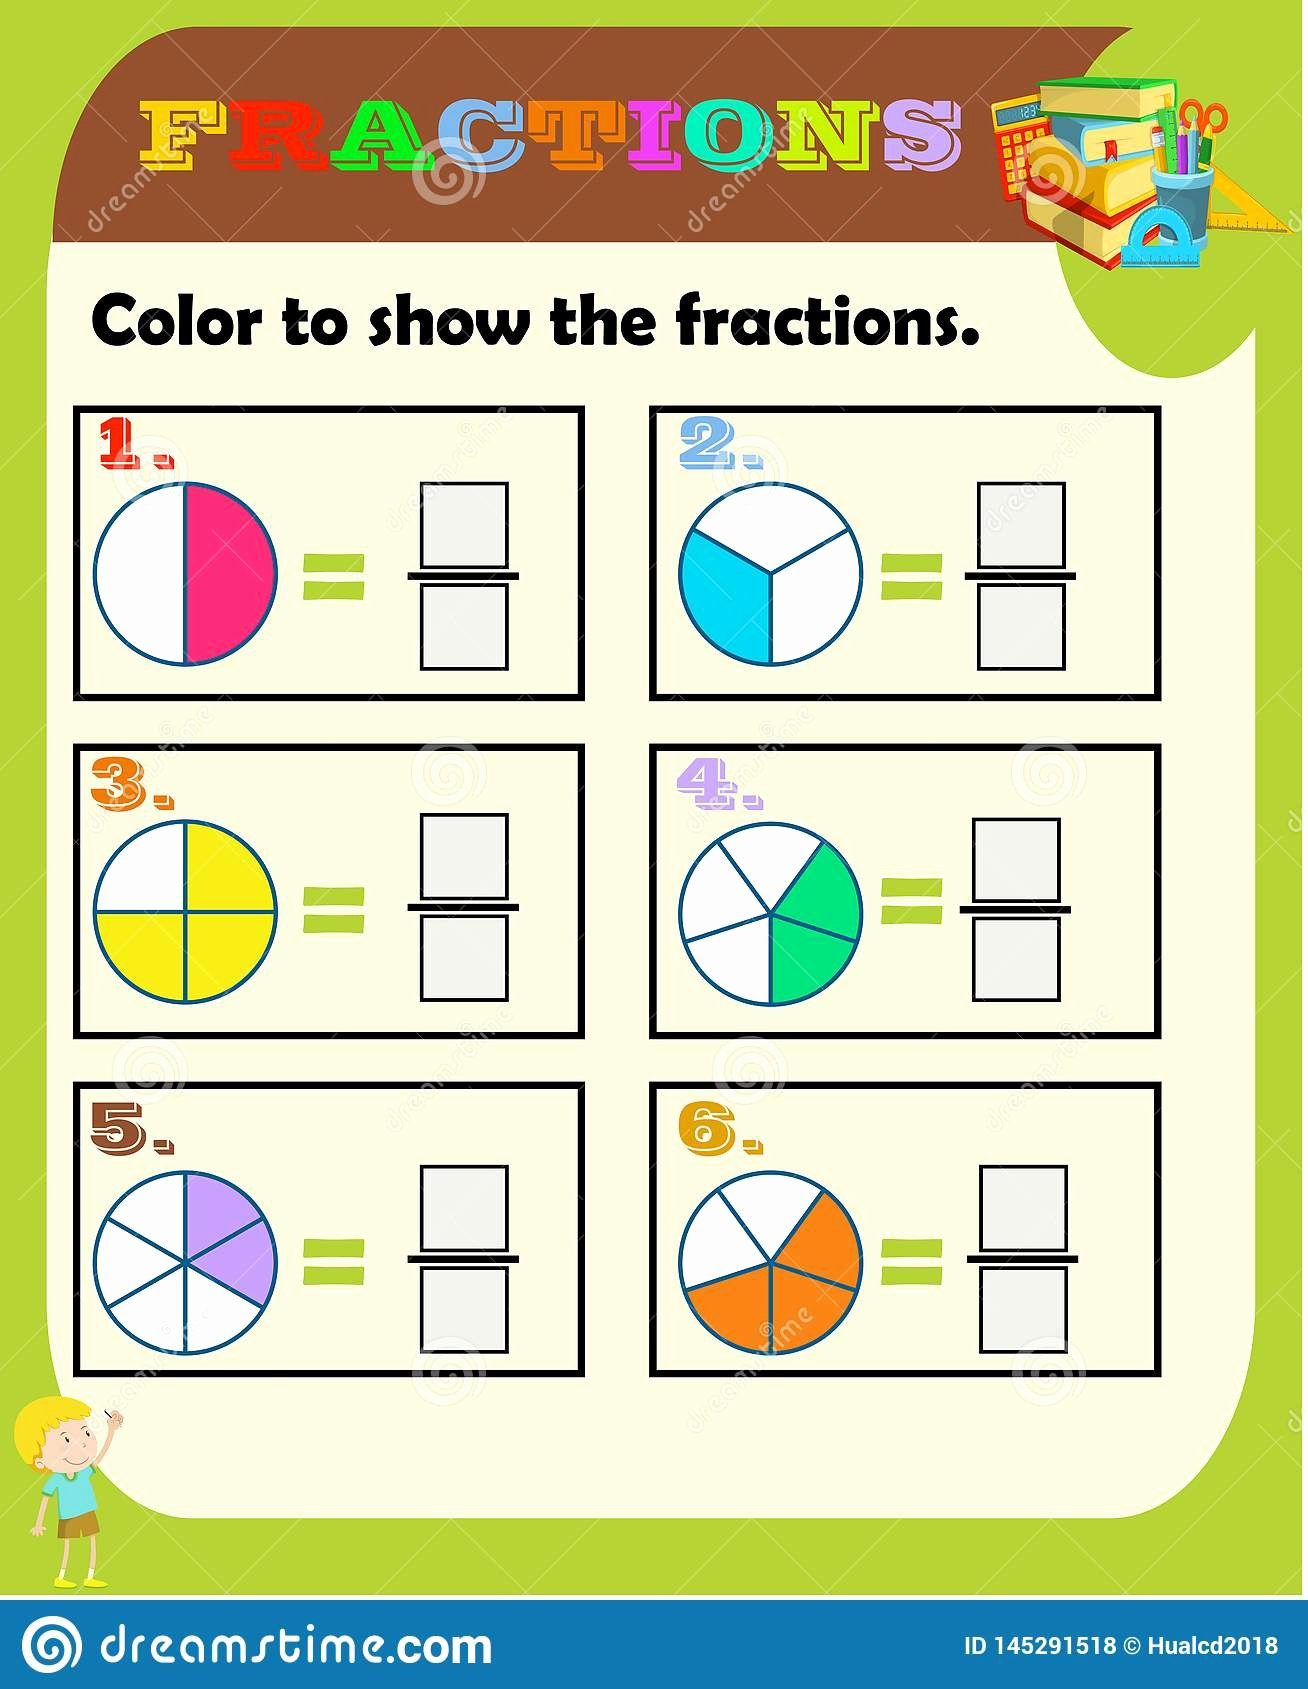 Free Fraction Worksheets for Preschoolers Inspirational Circle the Correct Fraction Mathematics Math Worksheet for